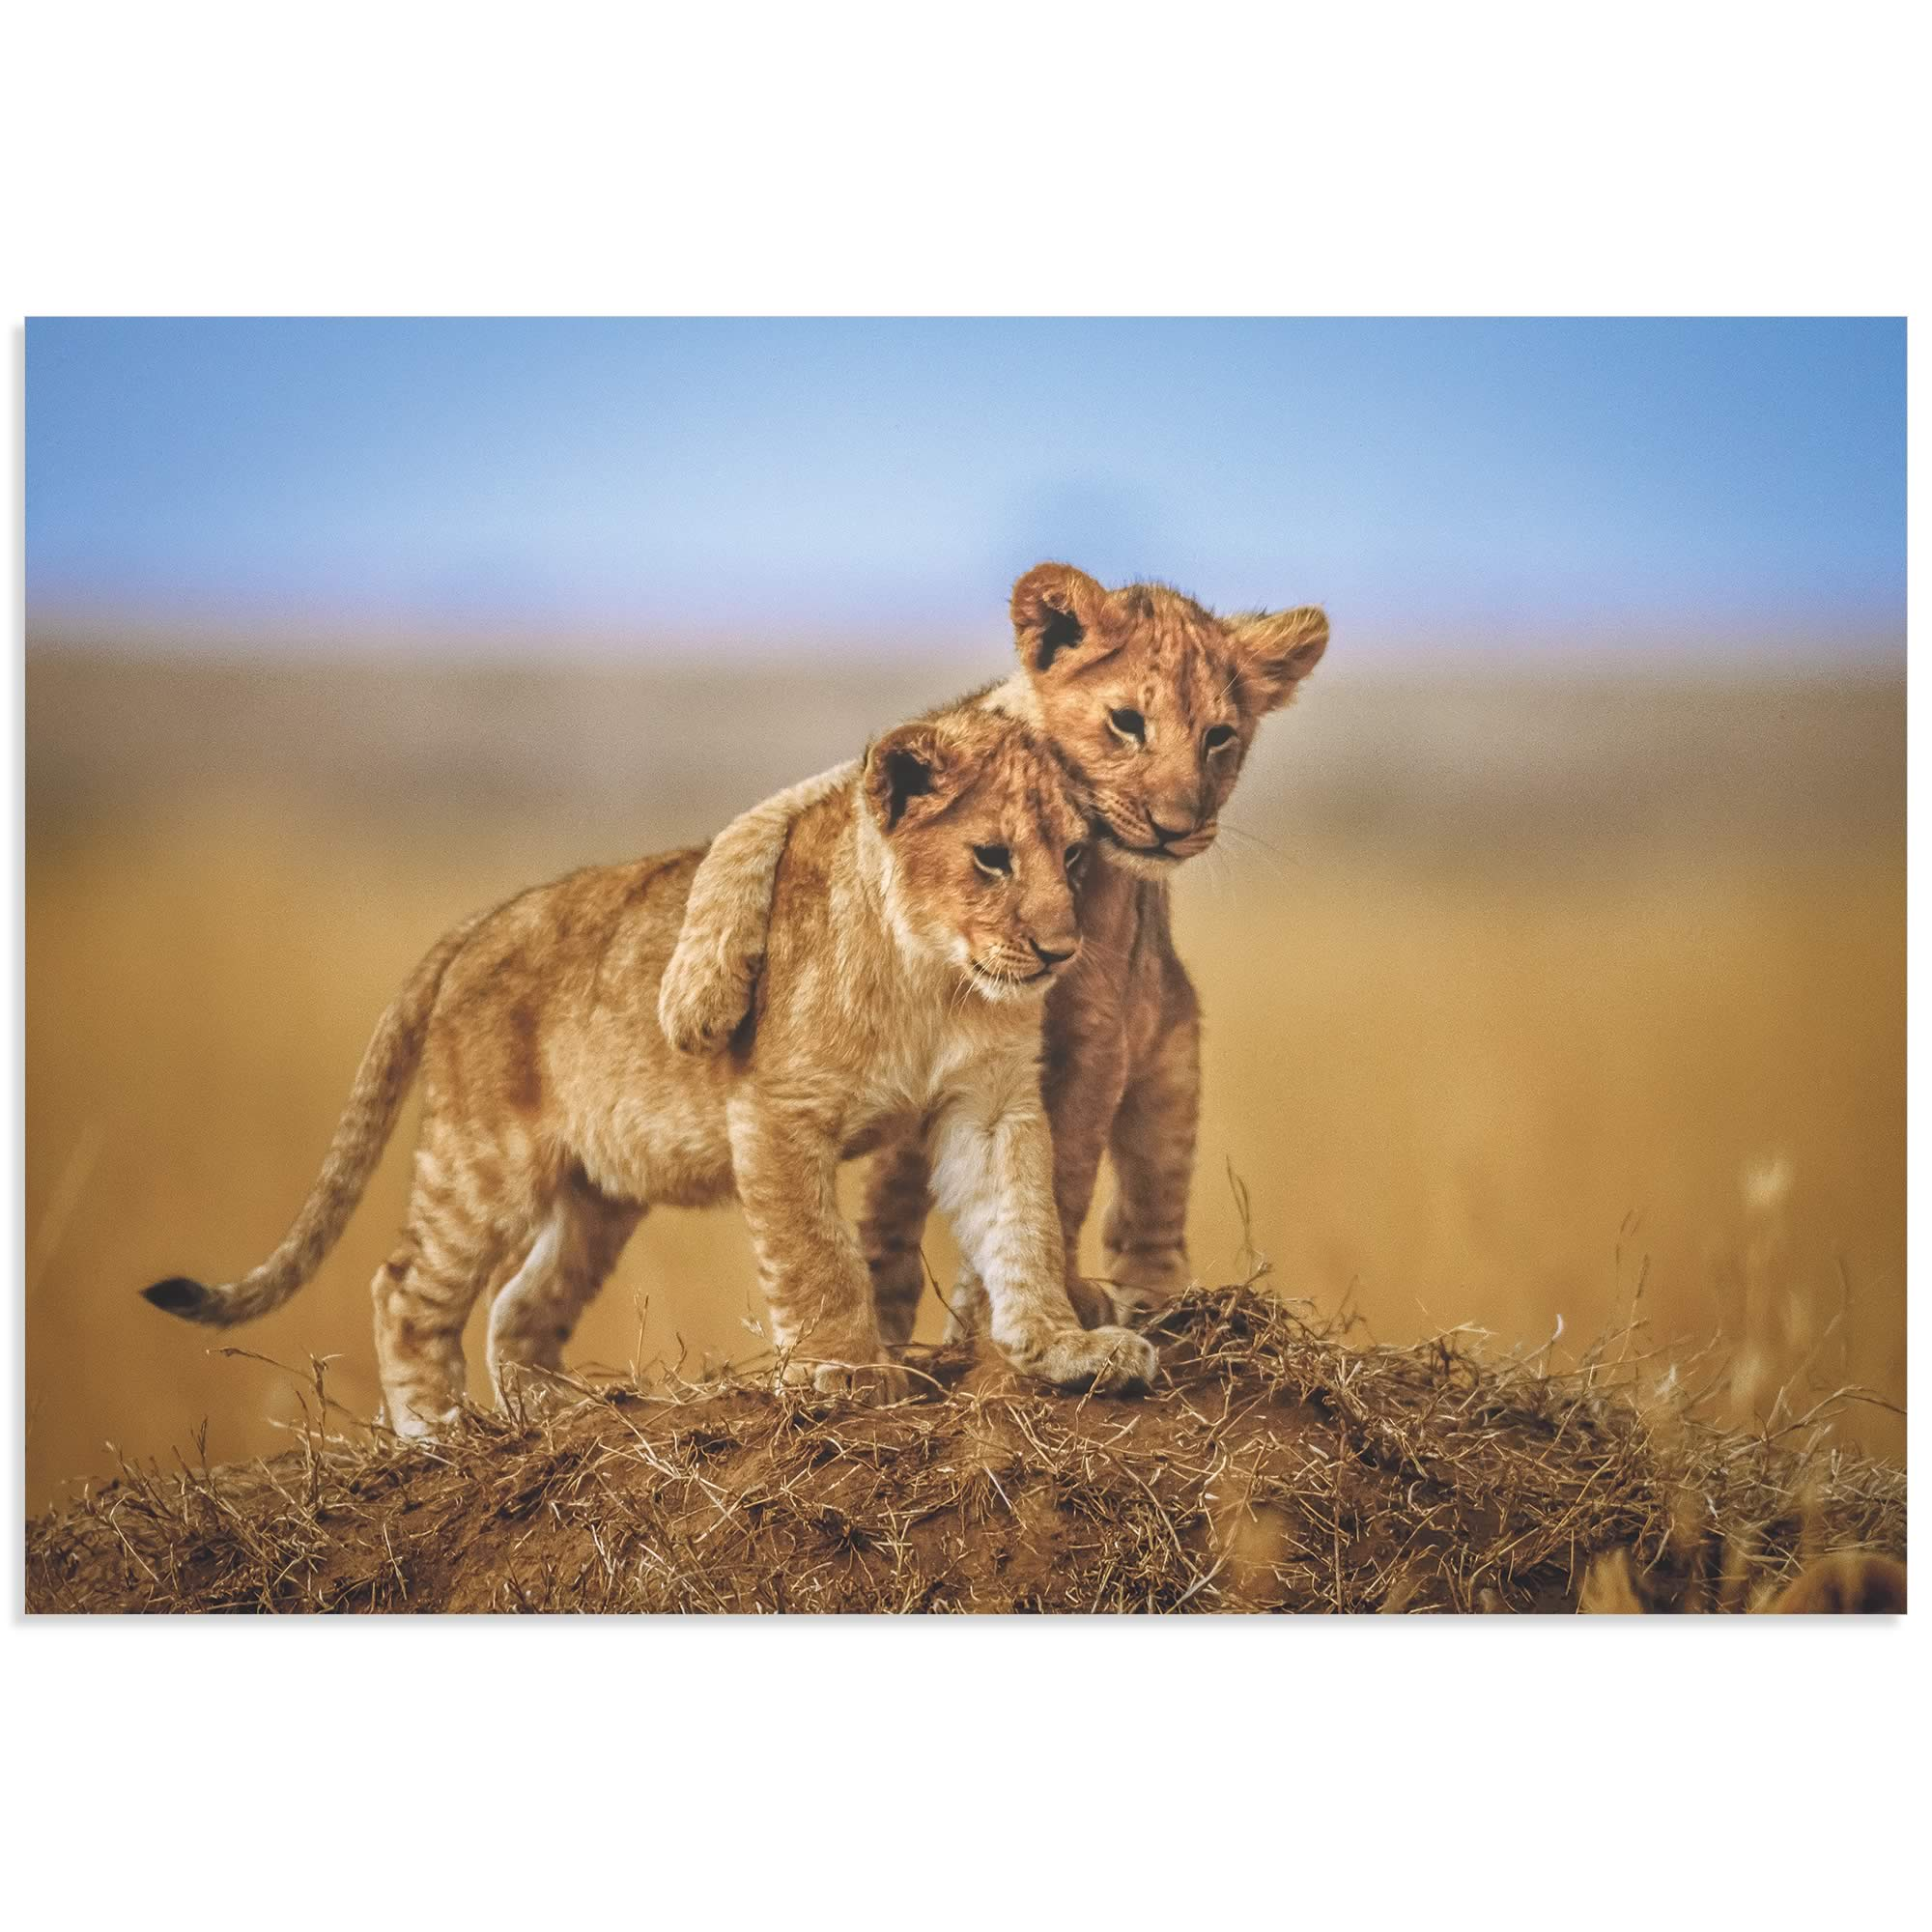 Lion Cub Brothers by Jeffrey C. Sink - Lion Cub Art on Metal or Acrylic